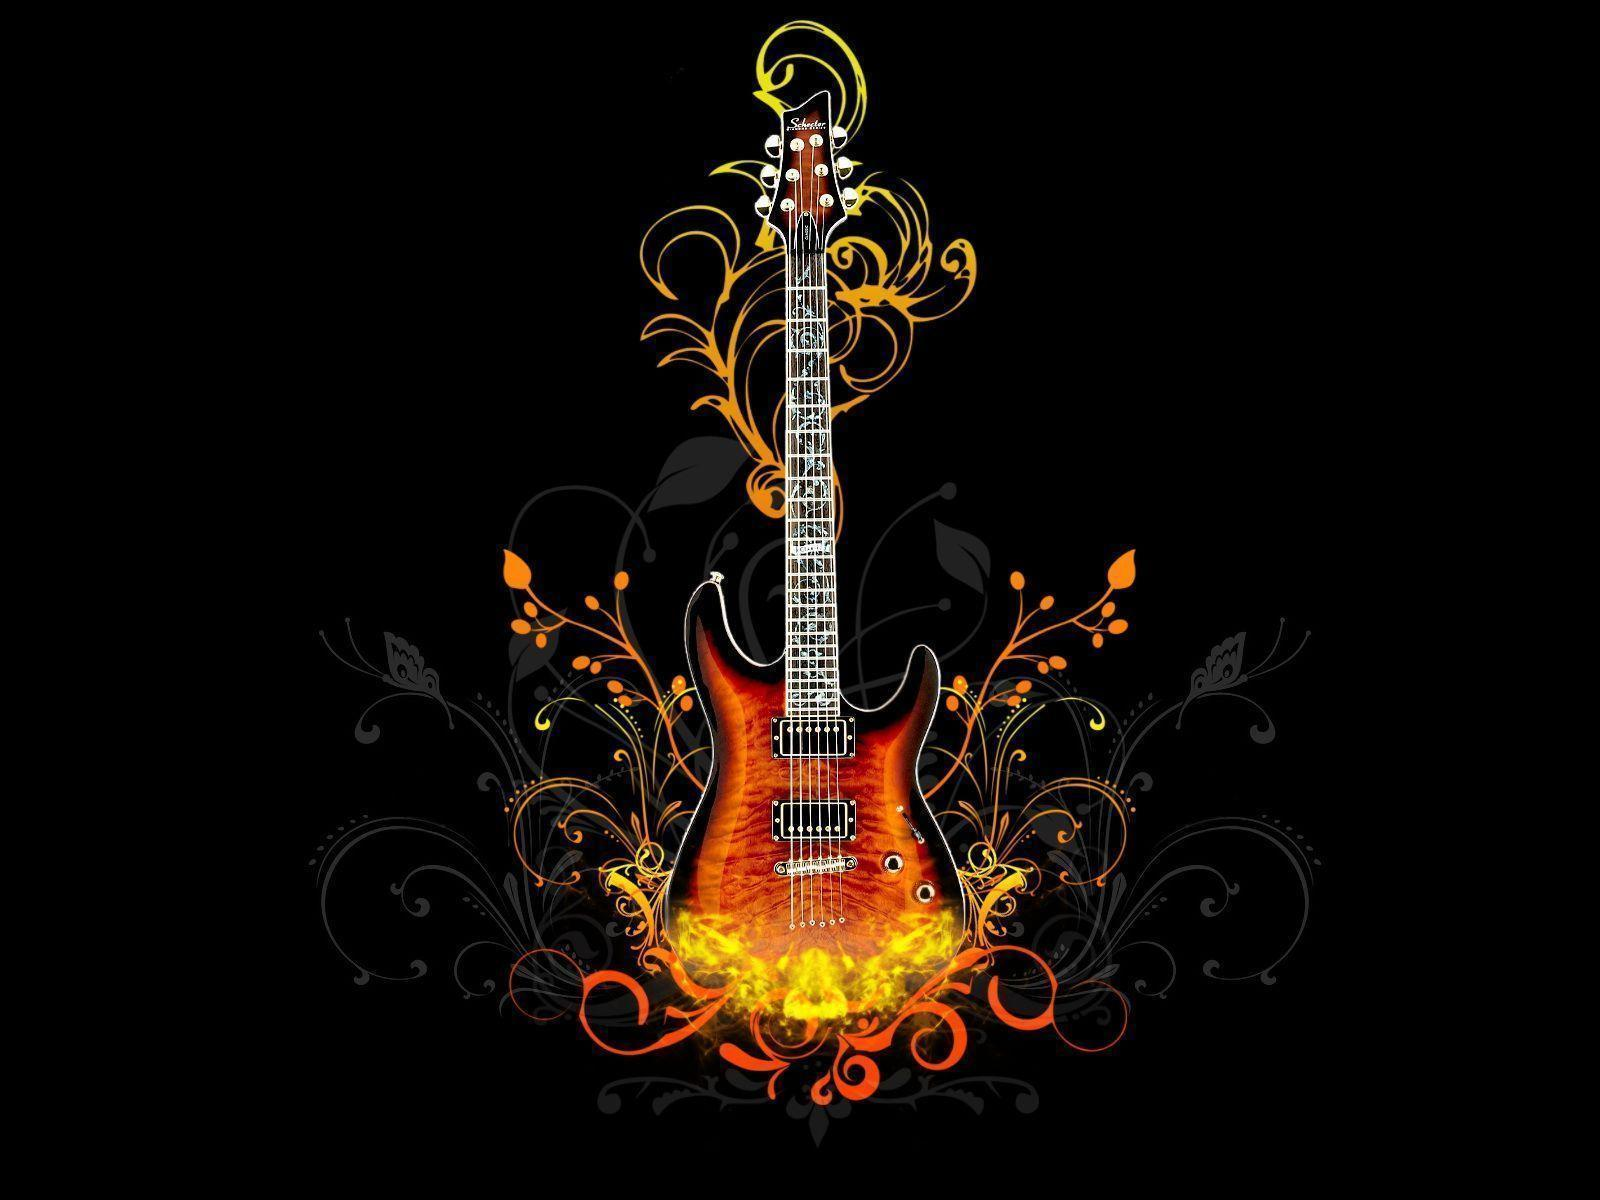 Guitar Image Hd Hd Backgrounds Wallpapers 38 HD Wallpapers